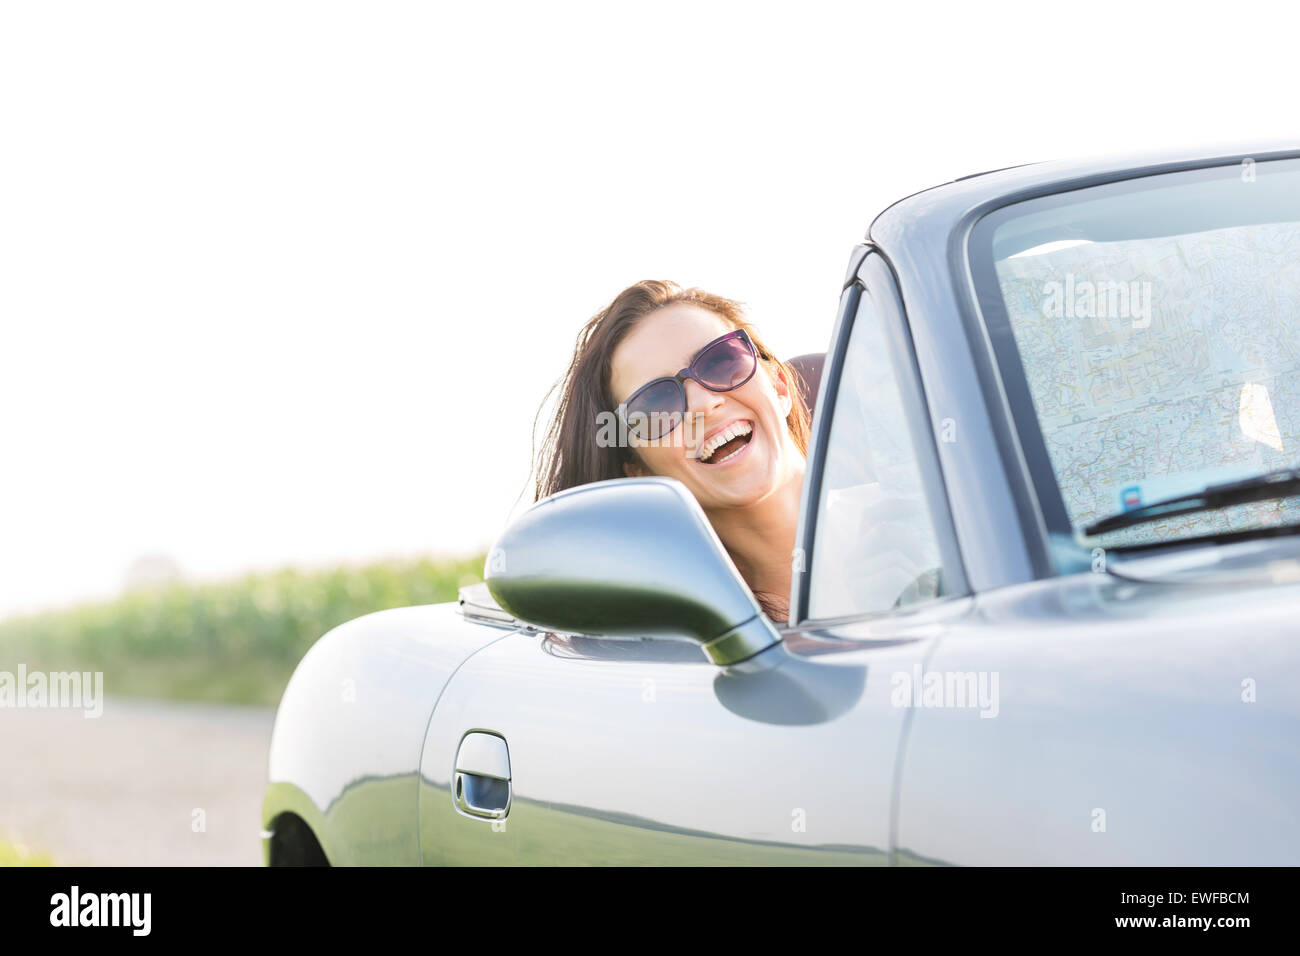 Excited woman enjoying road trip in convertible against clear sky - Stock Image